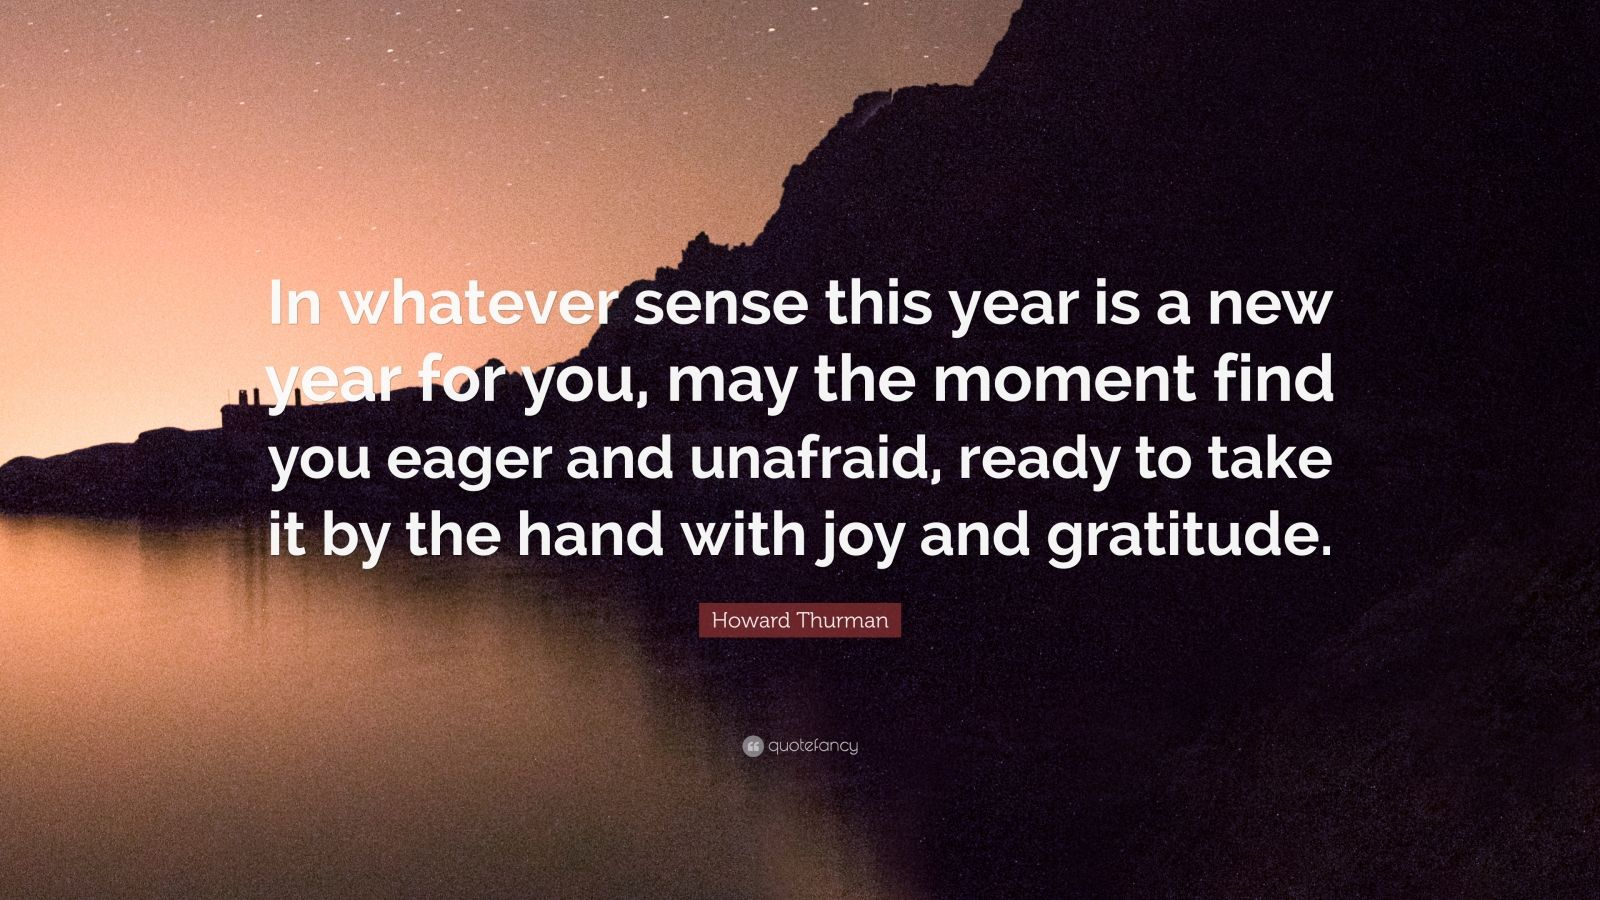 """Howard Thurman Quote: """"In whatever sense this year is a new year for you, may the moment find you eager and unafraid, ready to take it by the hand with joy and gratitude."""""""